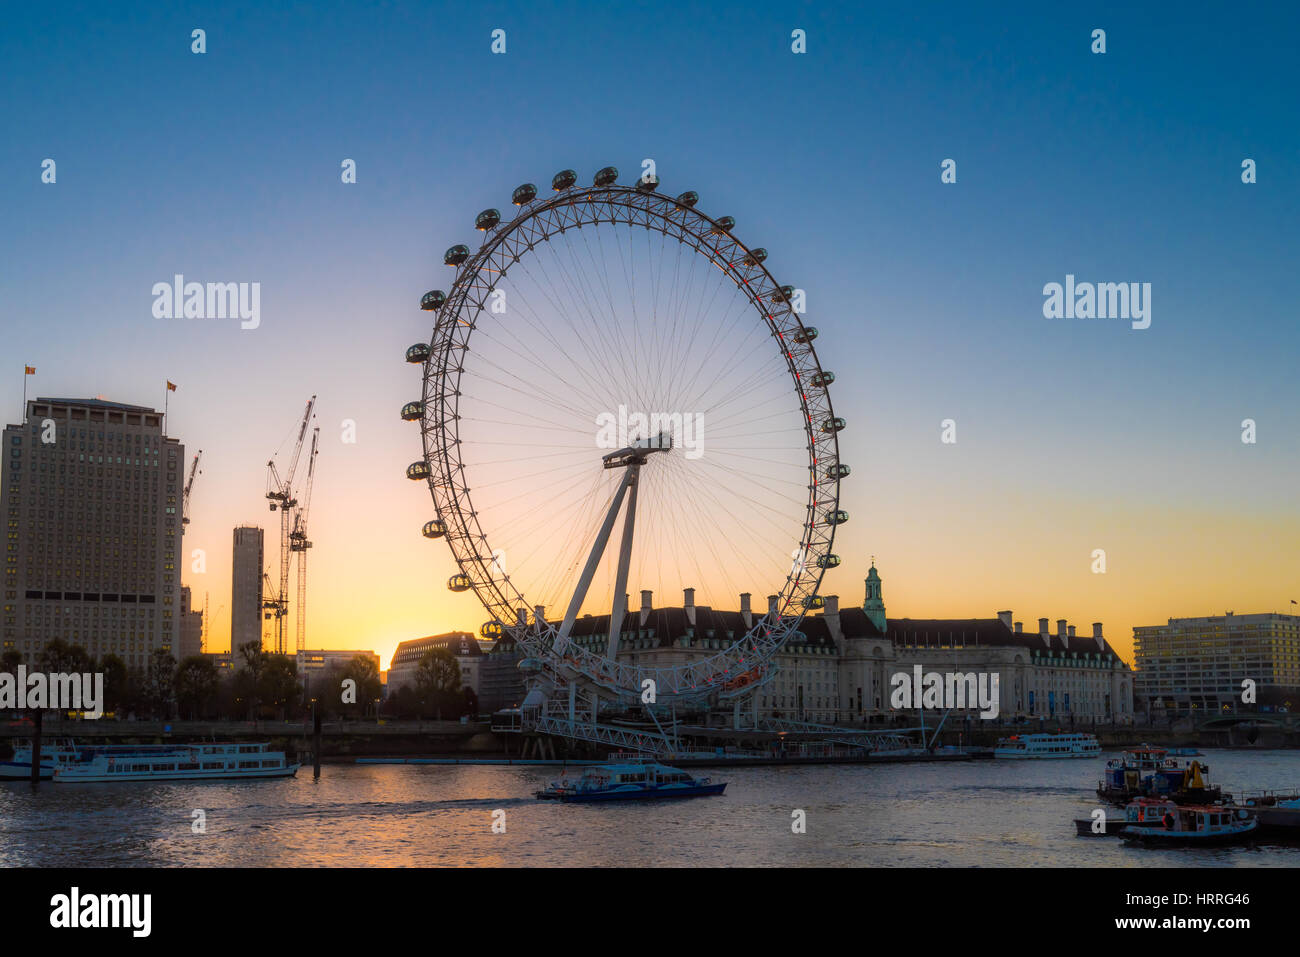 London Eye al amanecer- UK Imagen De Stock